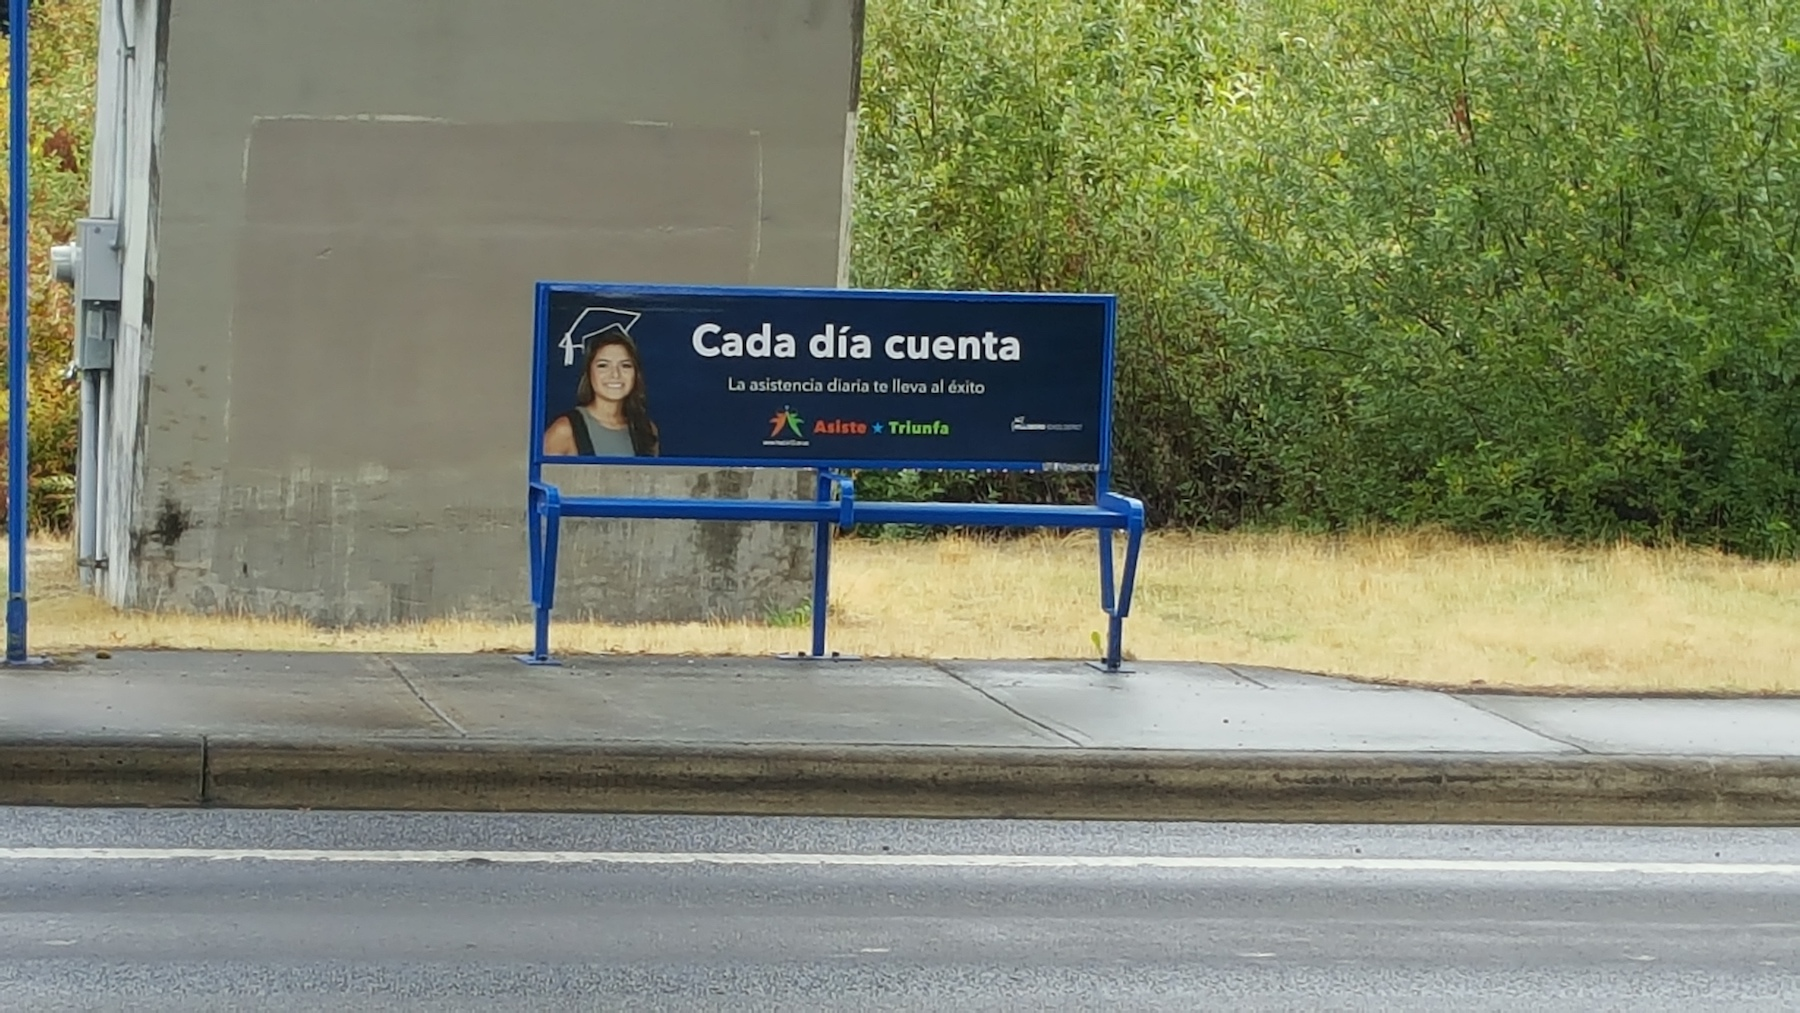 bus bench ad 4